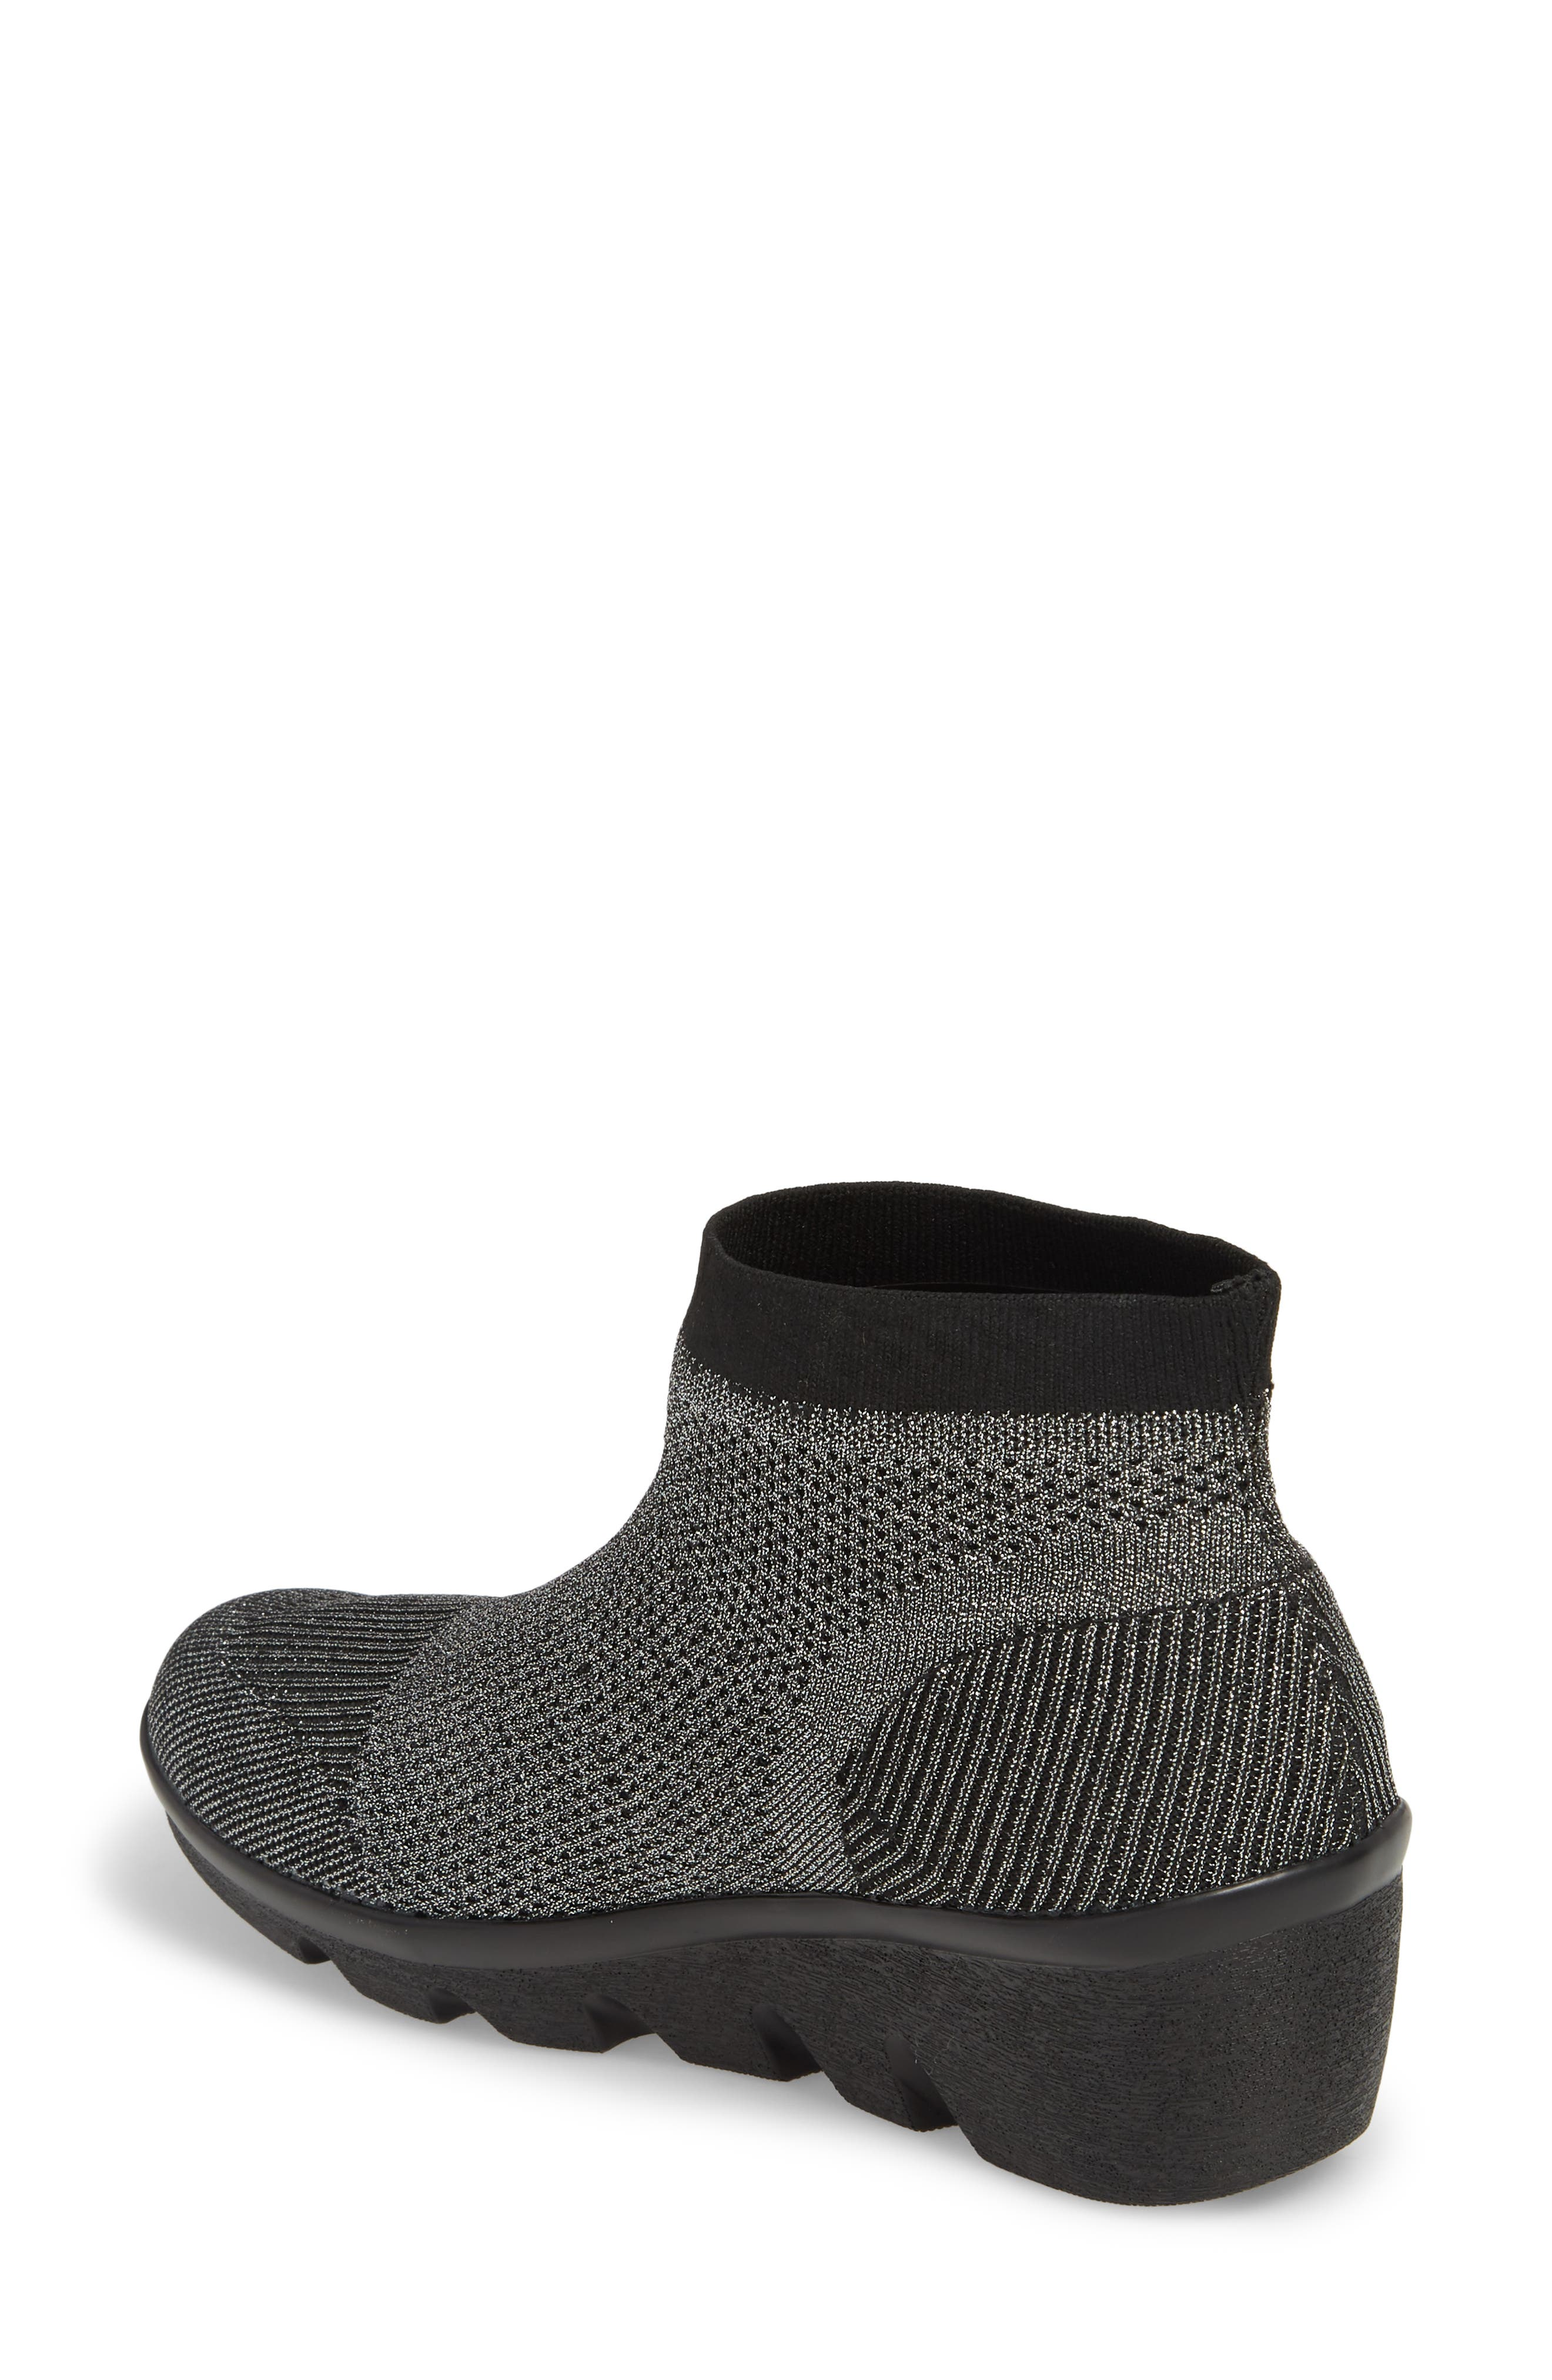 Camryn Knit Bootie,                             Alternate thumbnail 2, color,                             GUNMETAL FABRIC